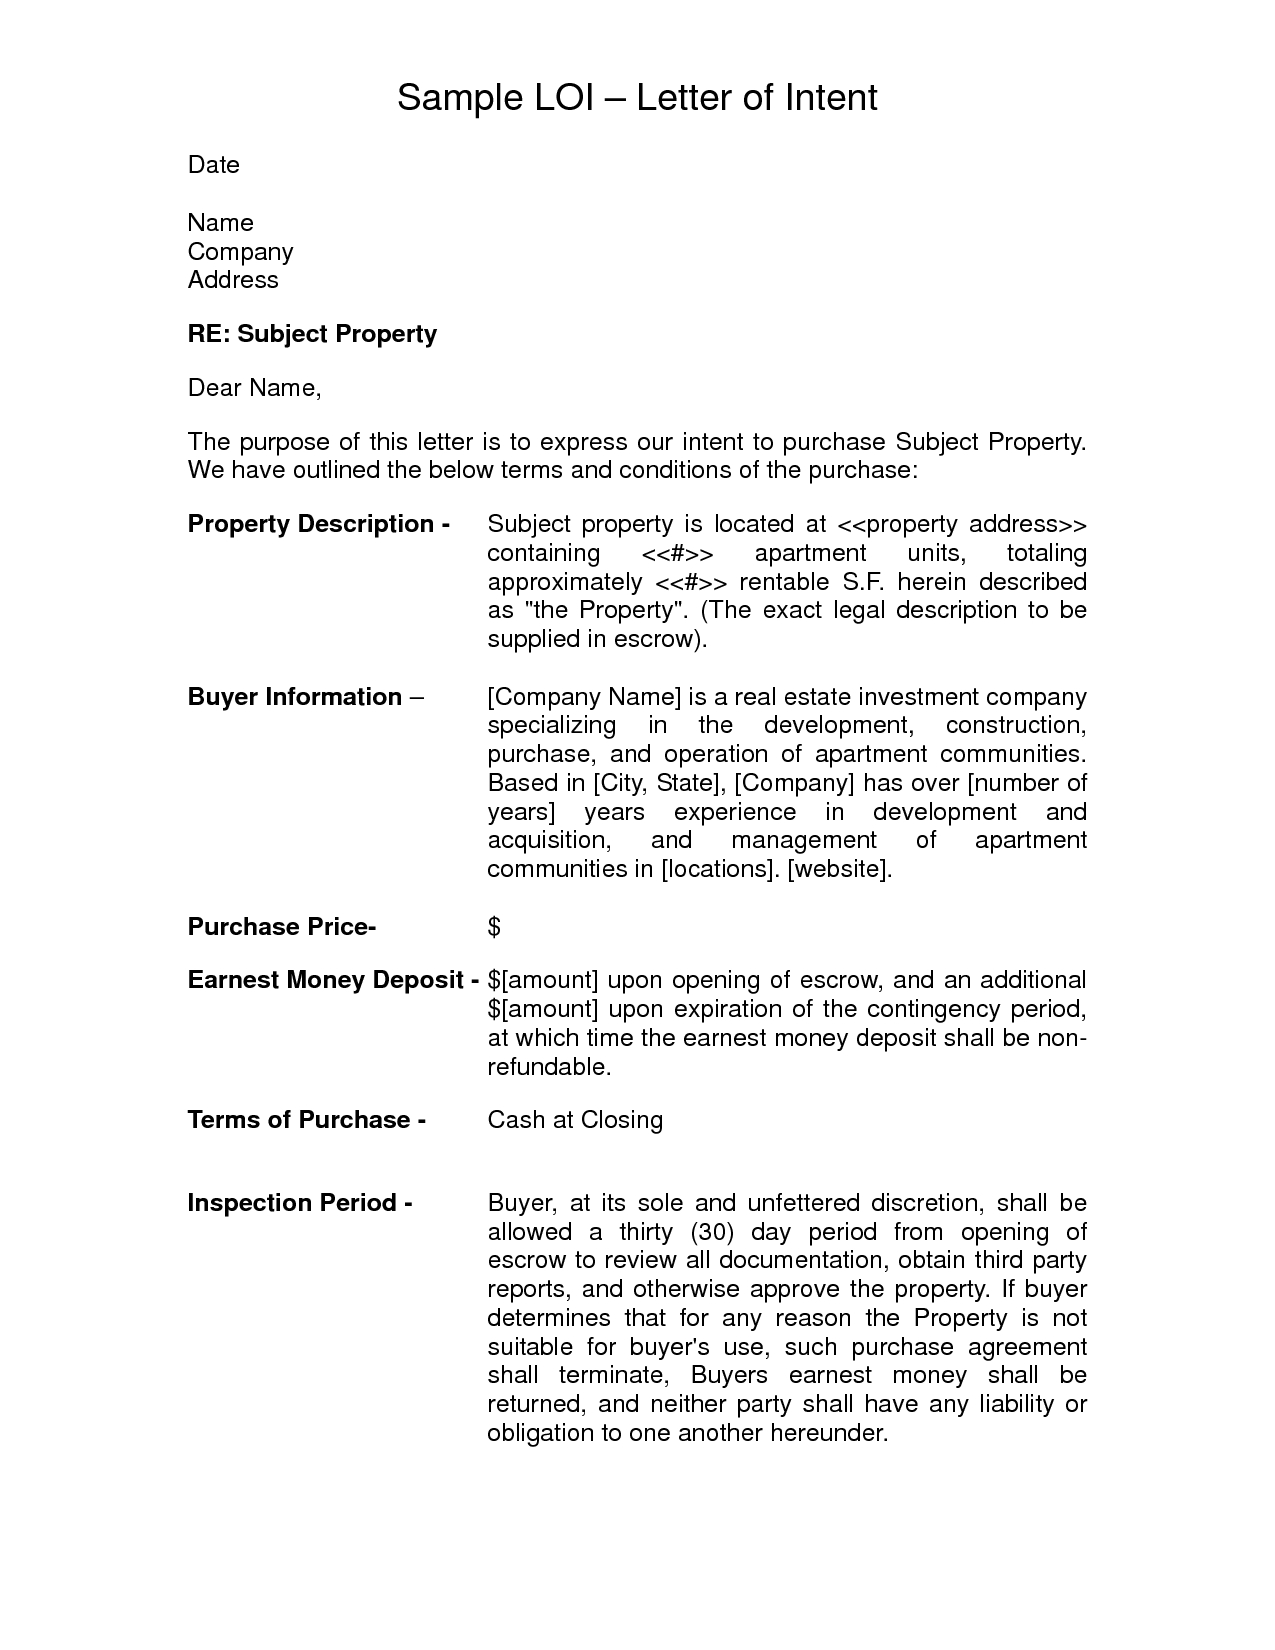 Letter Of Offer to Purchase Property Template - Letter Intent to Purchase Home Second Mobile Sample Buy House and